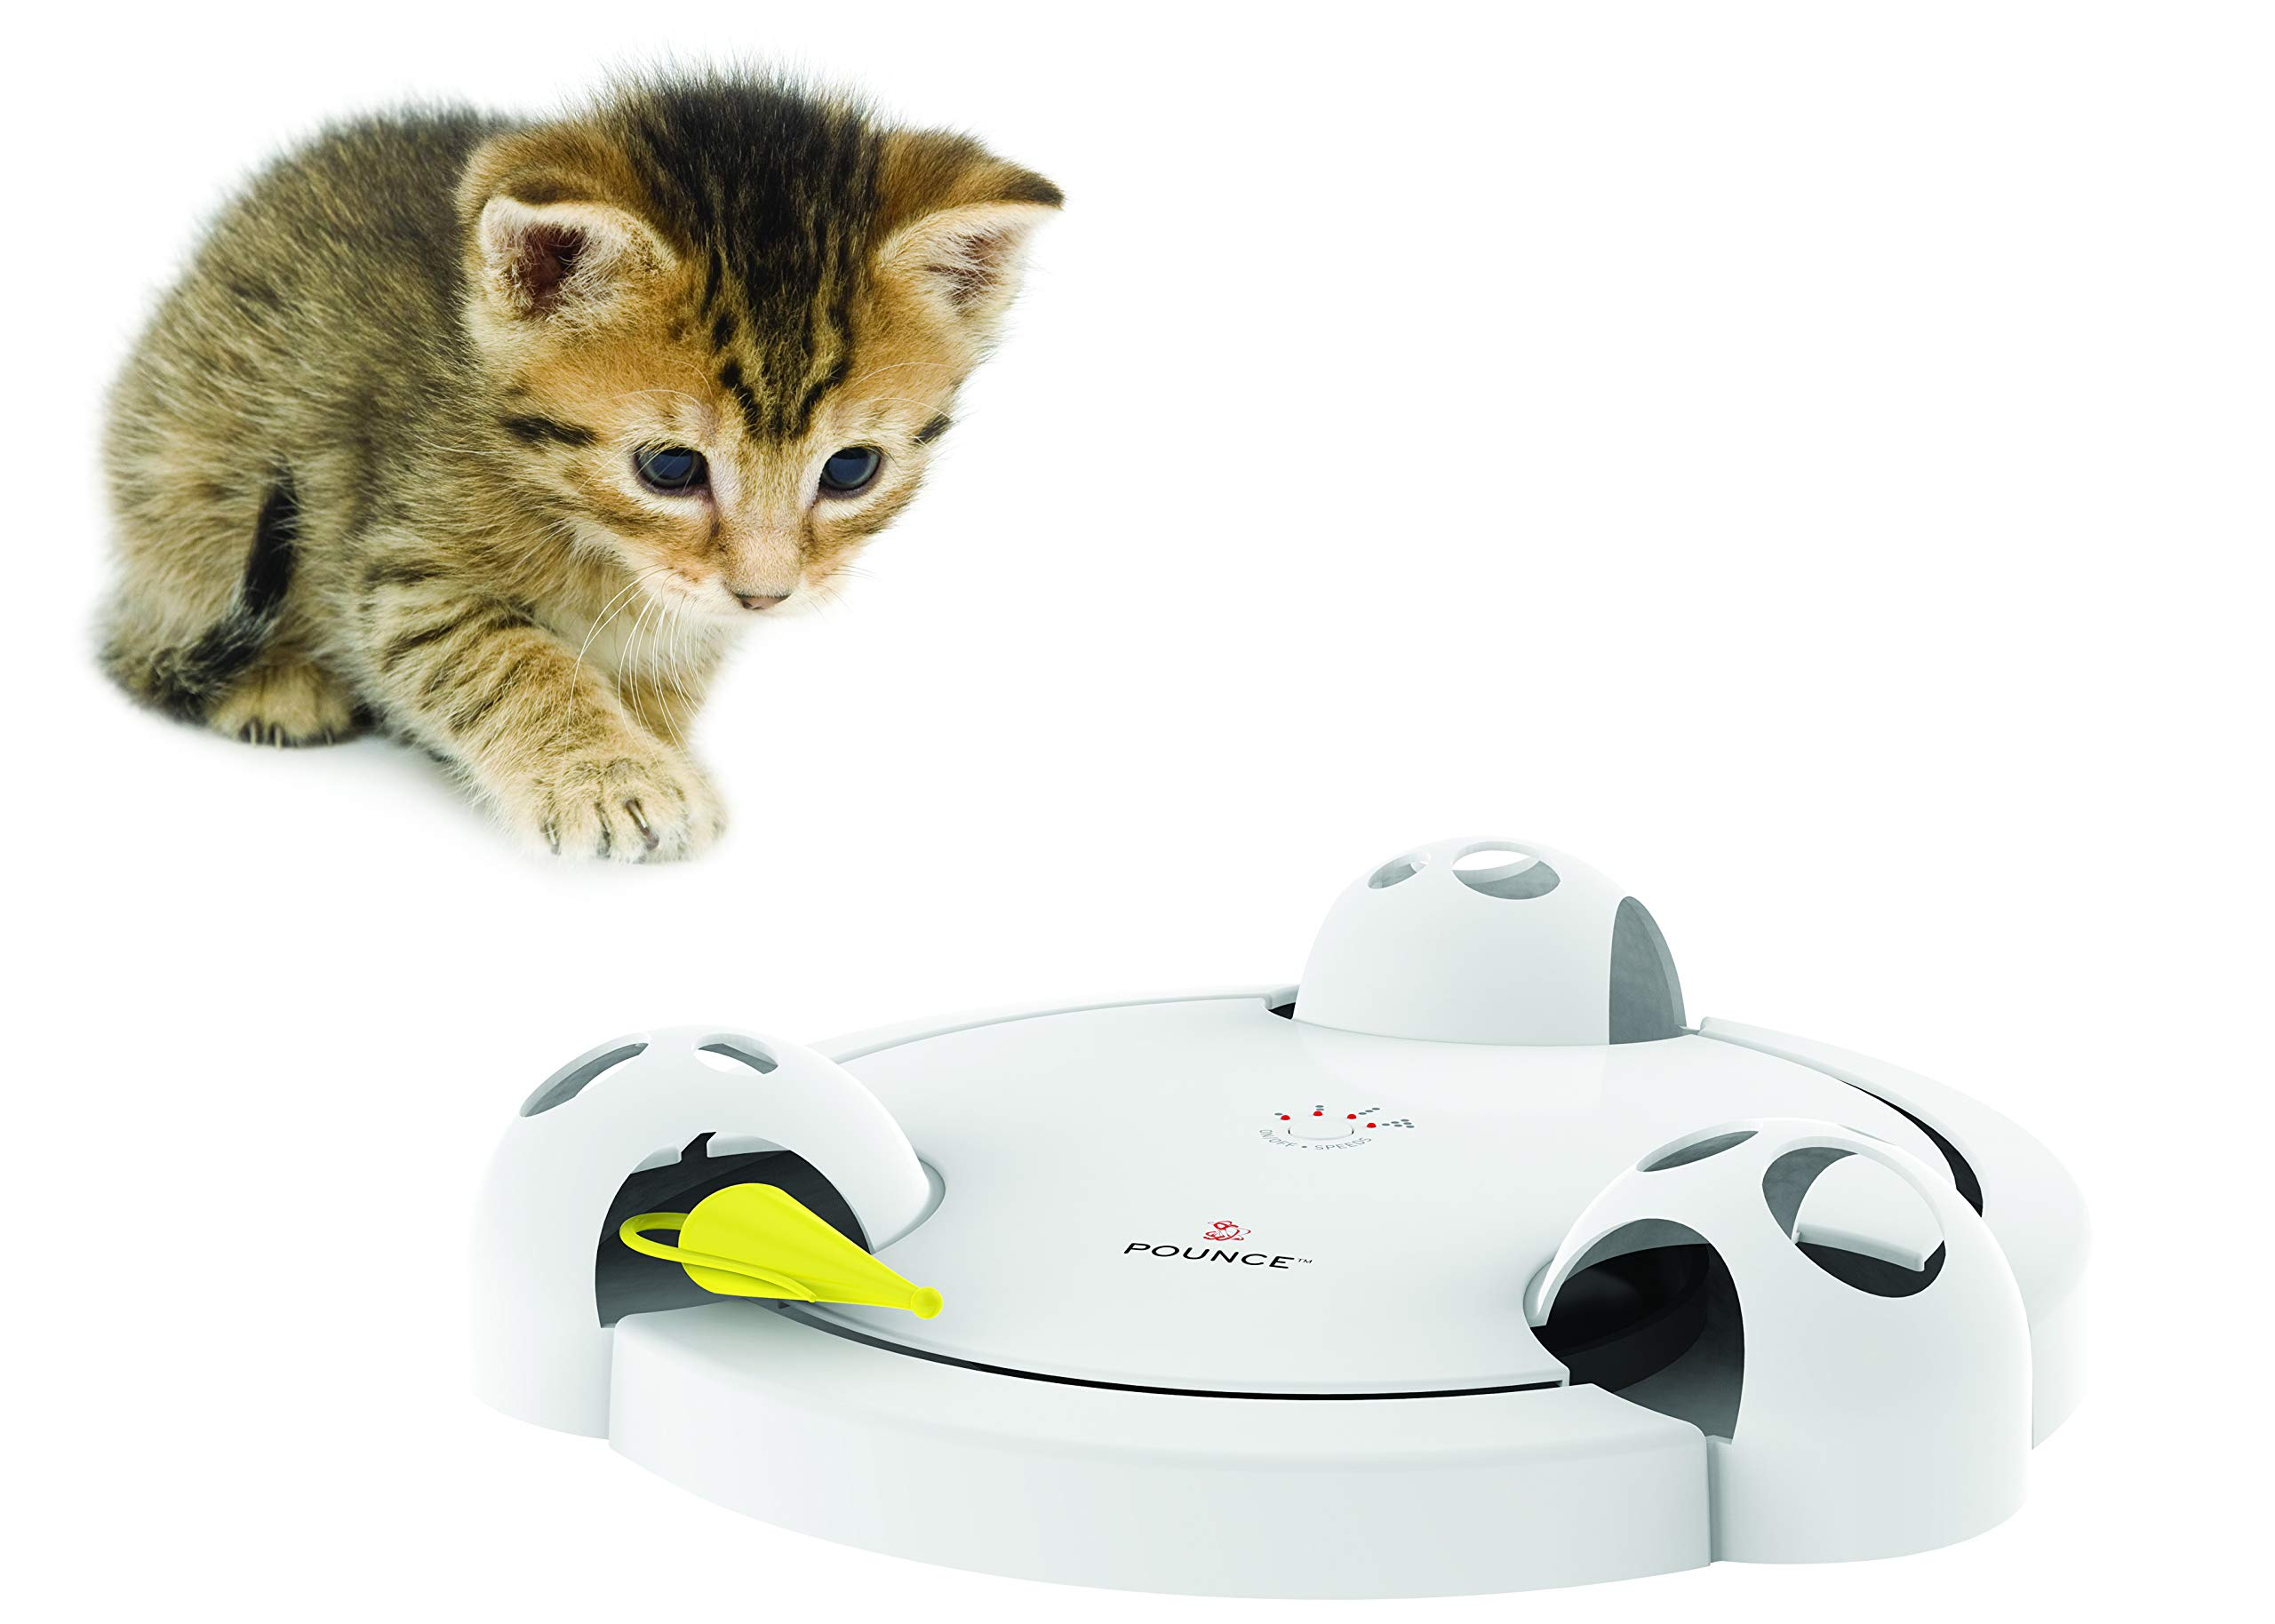 PetSafe Pounce Cat Toy, Interactive Automatic Toy for Cat or Kitten, Adjustable Electronic Battery Operated Toy by PetSafe